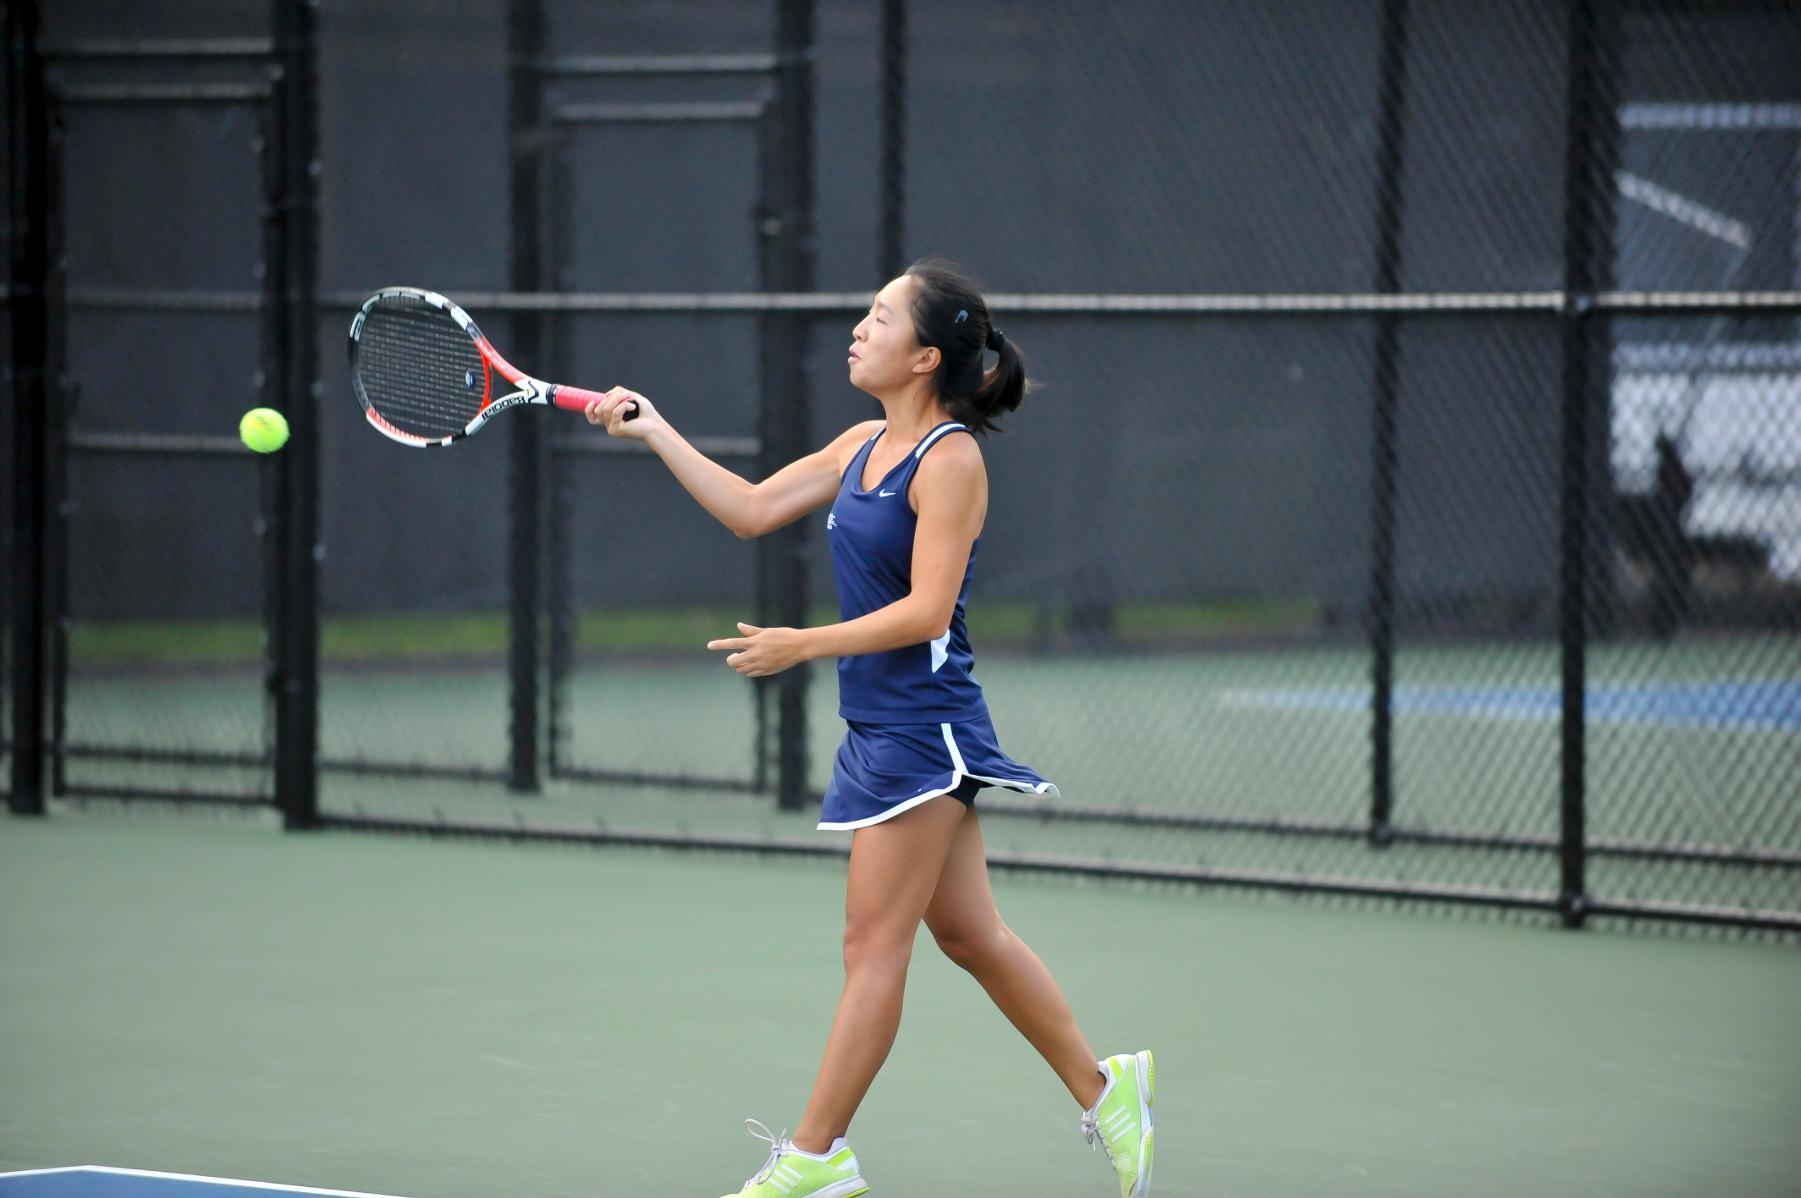 TENNIS POSTS 9-0 VICTORY OVER SIMMONS